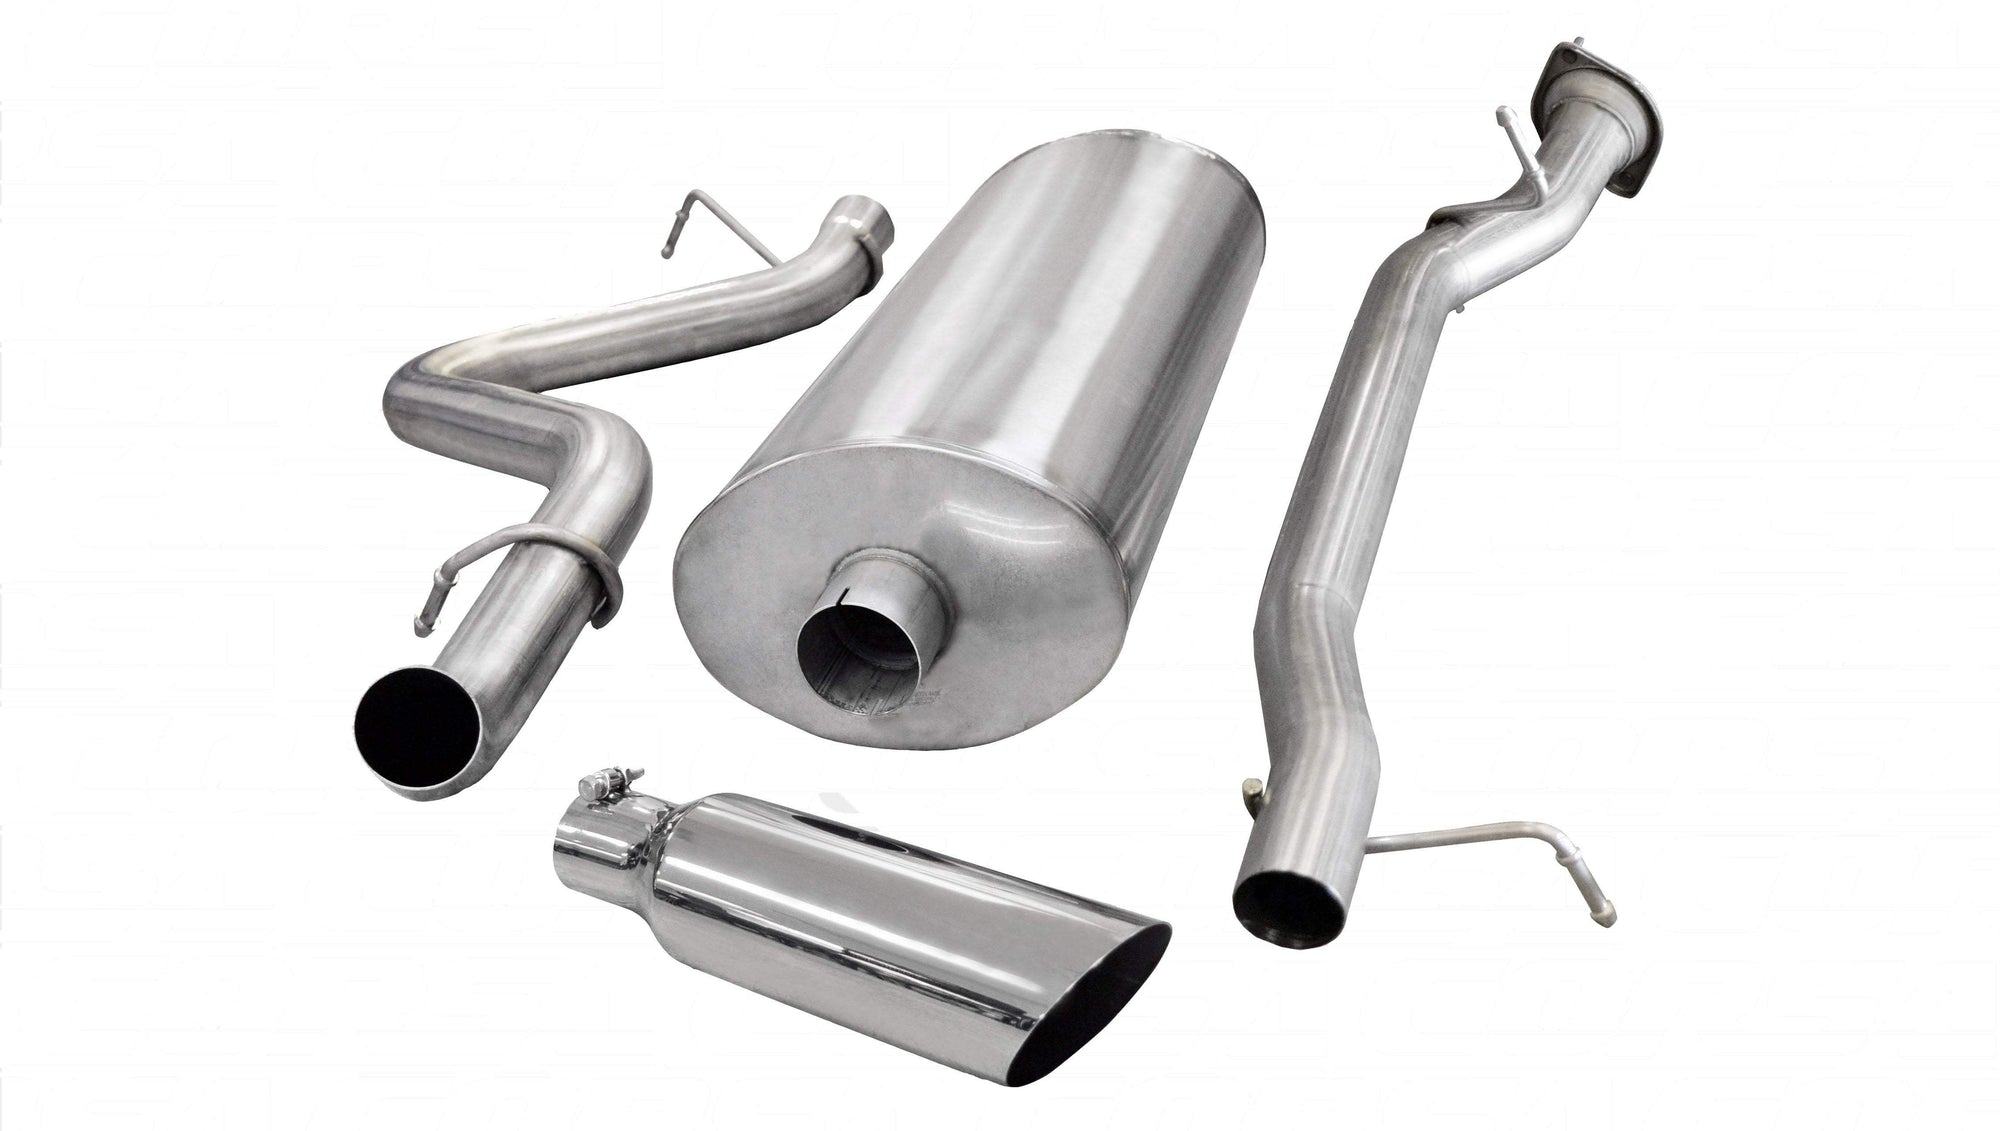 "dB Cat-Back Exhaust Polished / Sport / Single Side - Single 4in 3.0"" Single Side Exit Cat-Back Exhaust System with 4.0"" Tip (24898) Sport Sound Level"